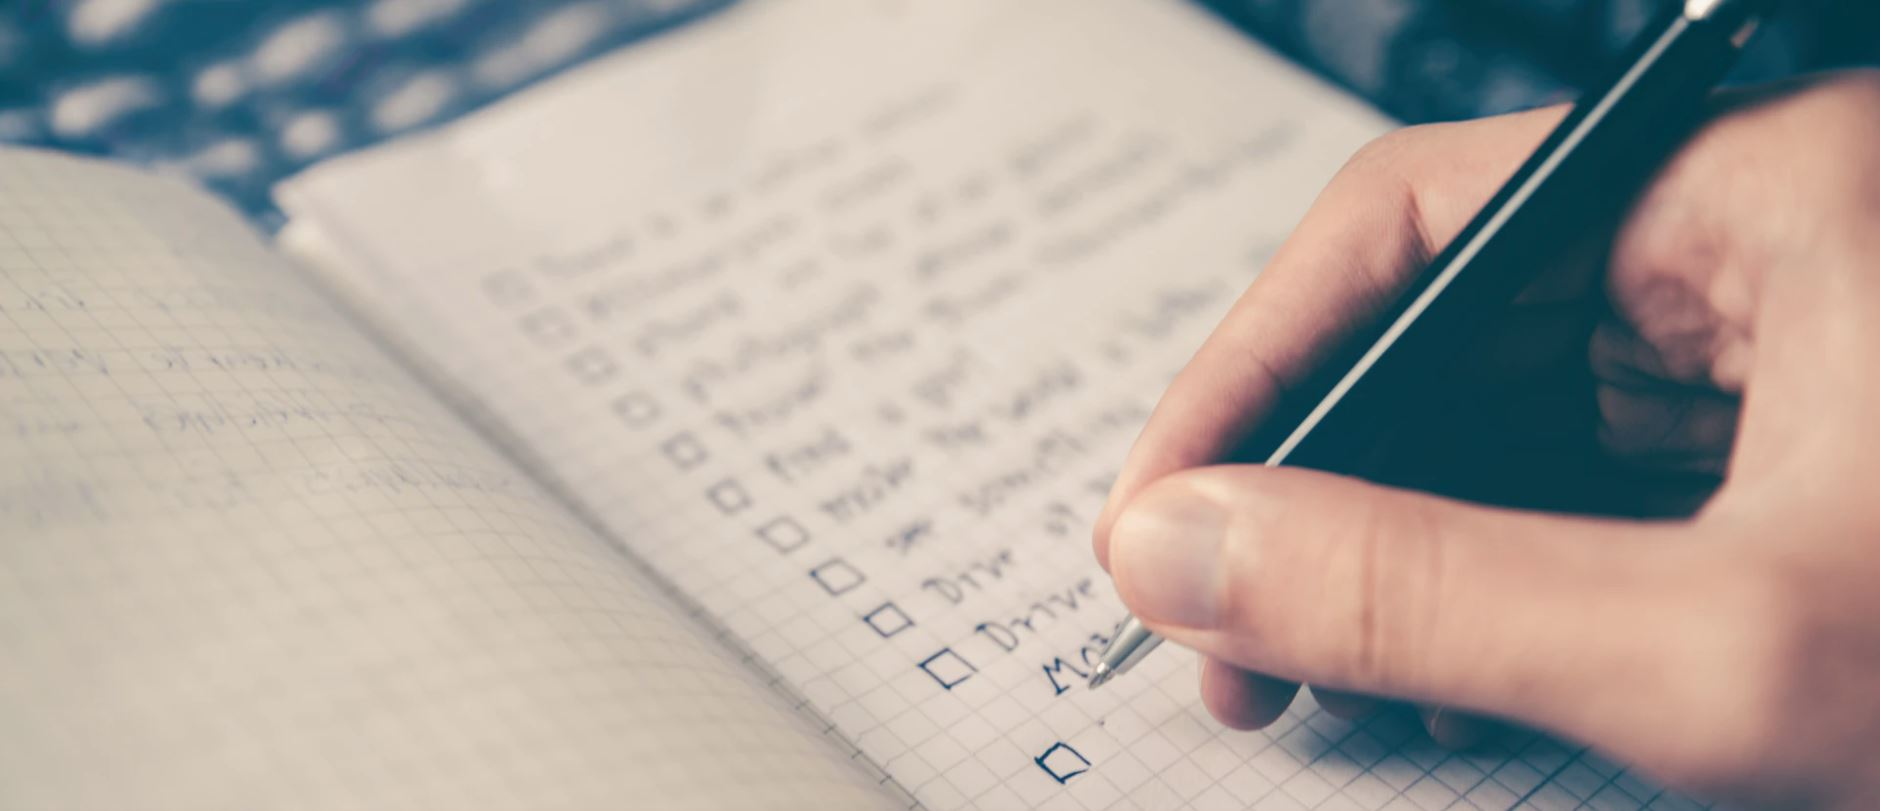 Person making list of goals in notebook